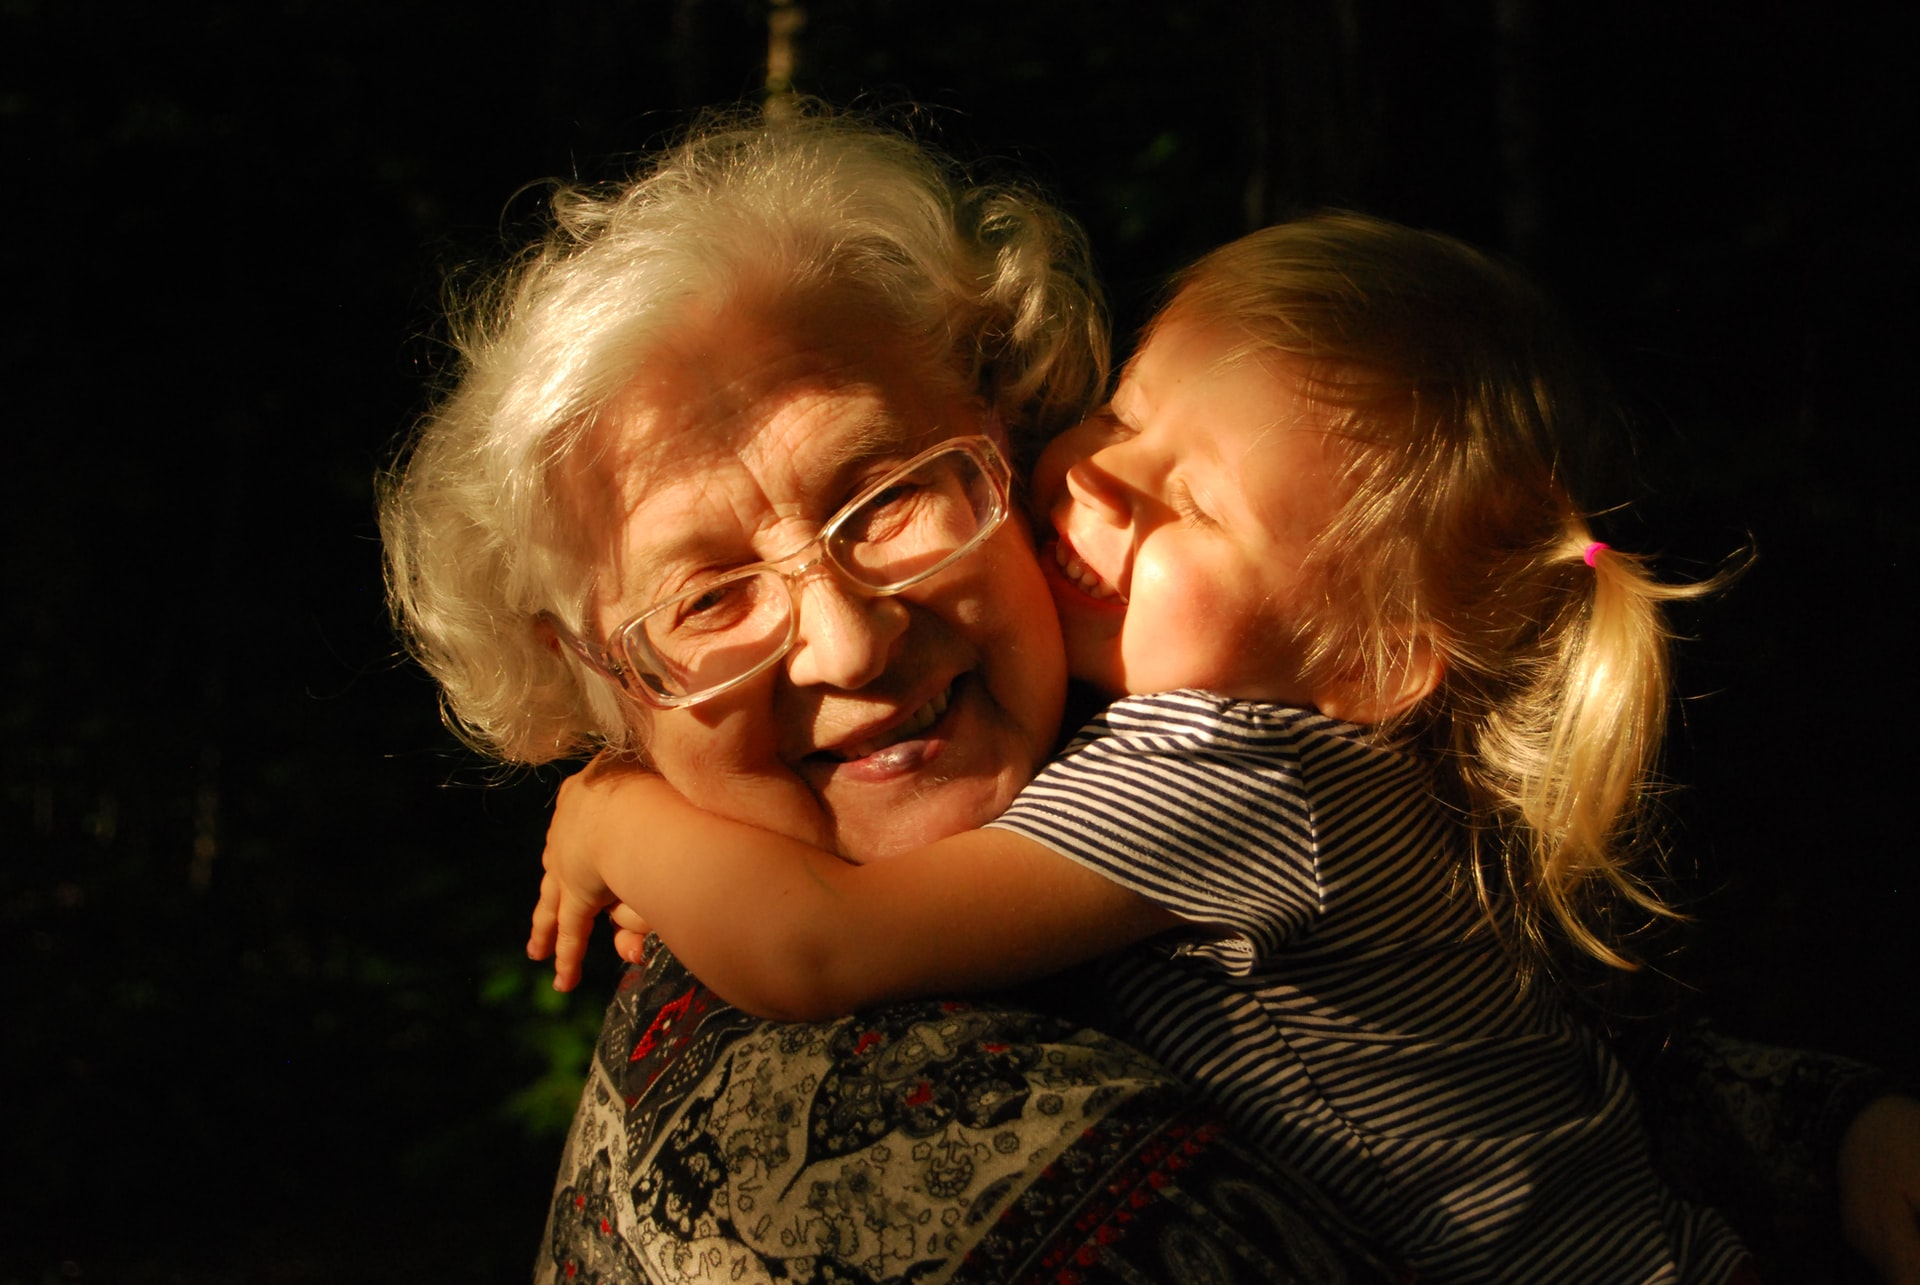 a grandmother and granddaughter hugging and smiling